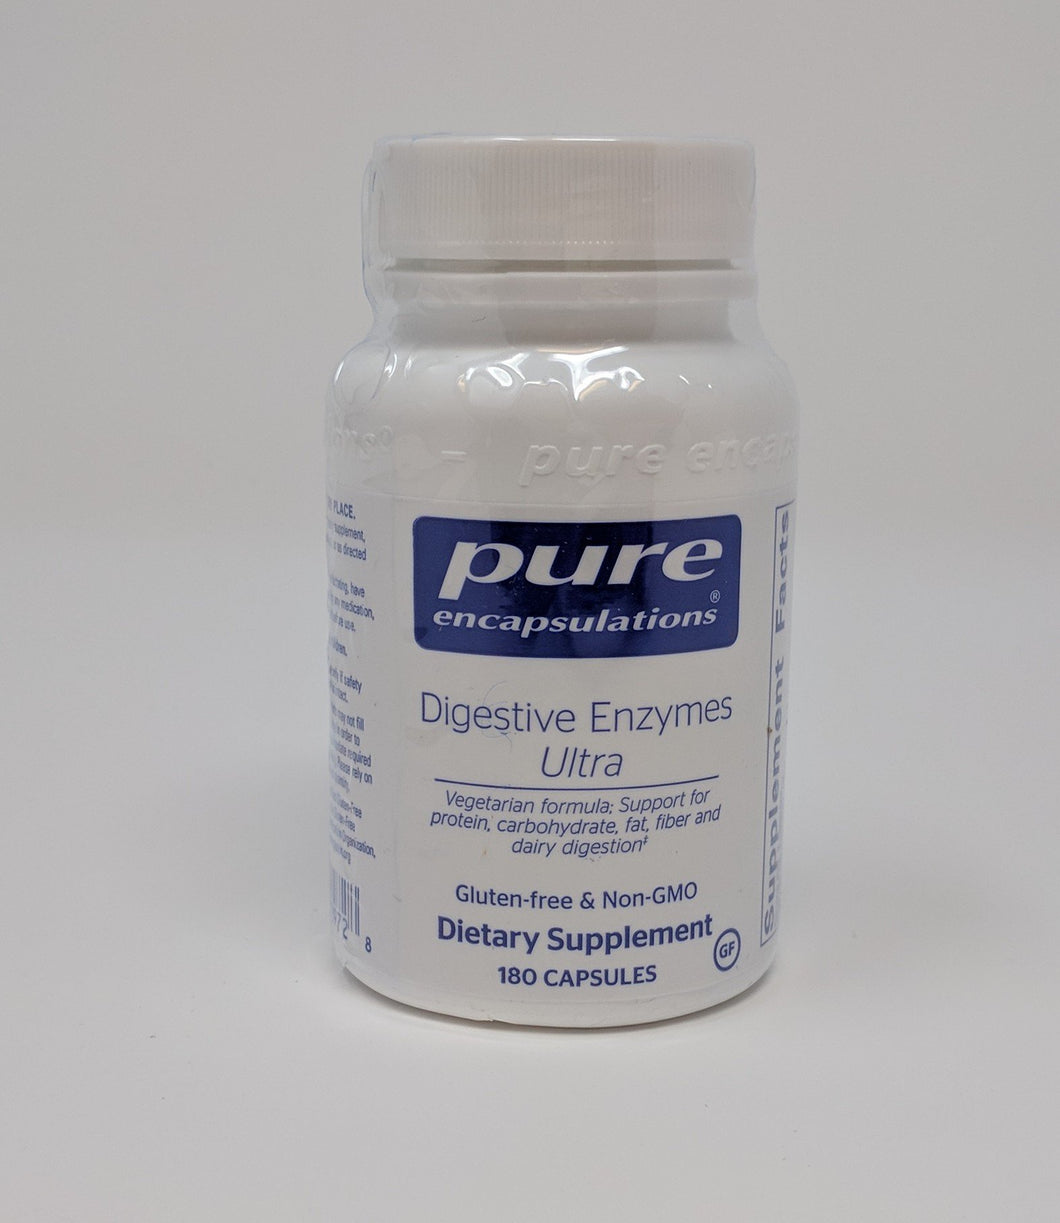 Digestive Enzymes Ultra by Pure Encapsulations 180 Caps. Vegetarian Formula